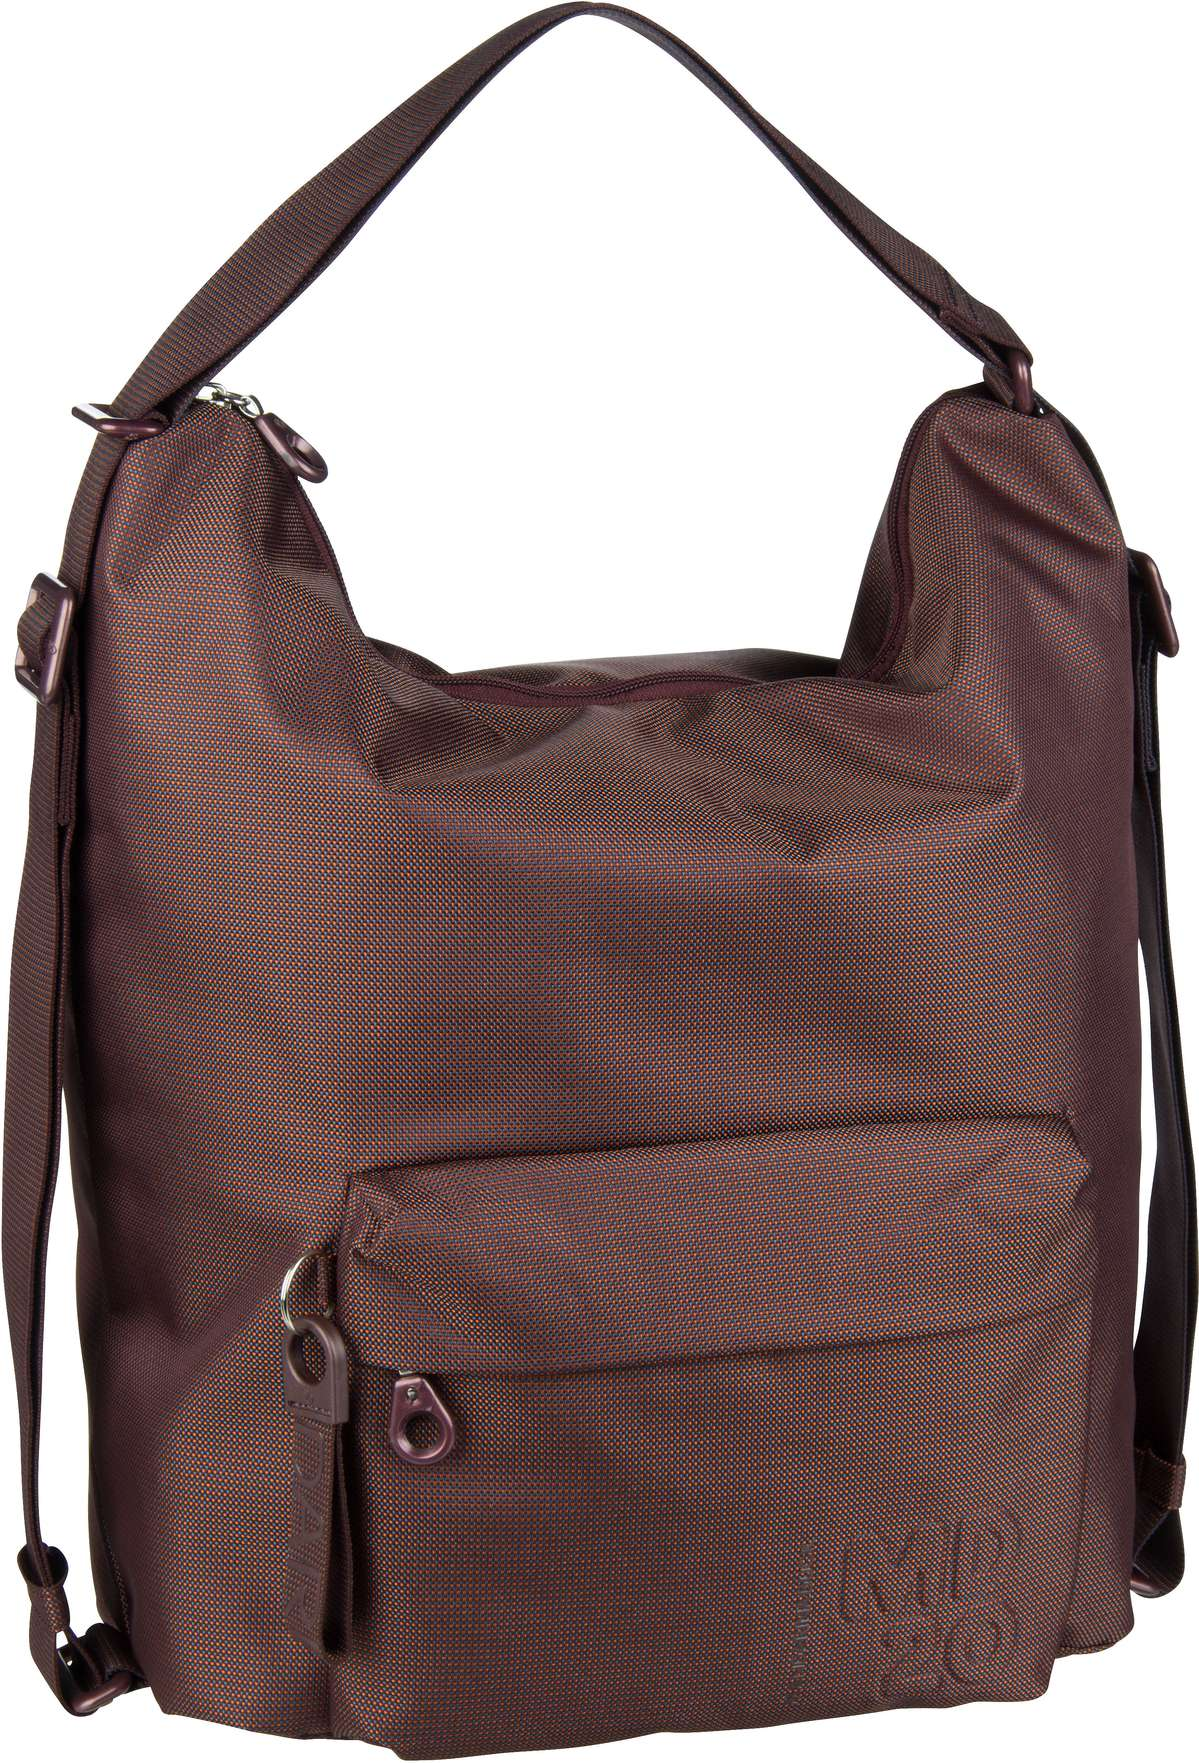 Handtasche MD20 Hobo Backpack QMT09 Balsamic